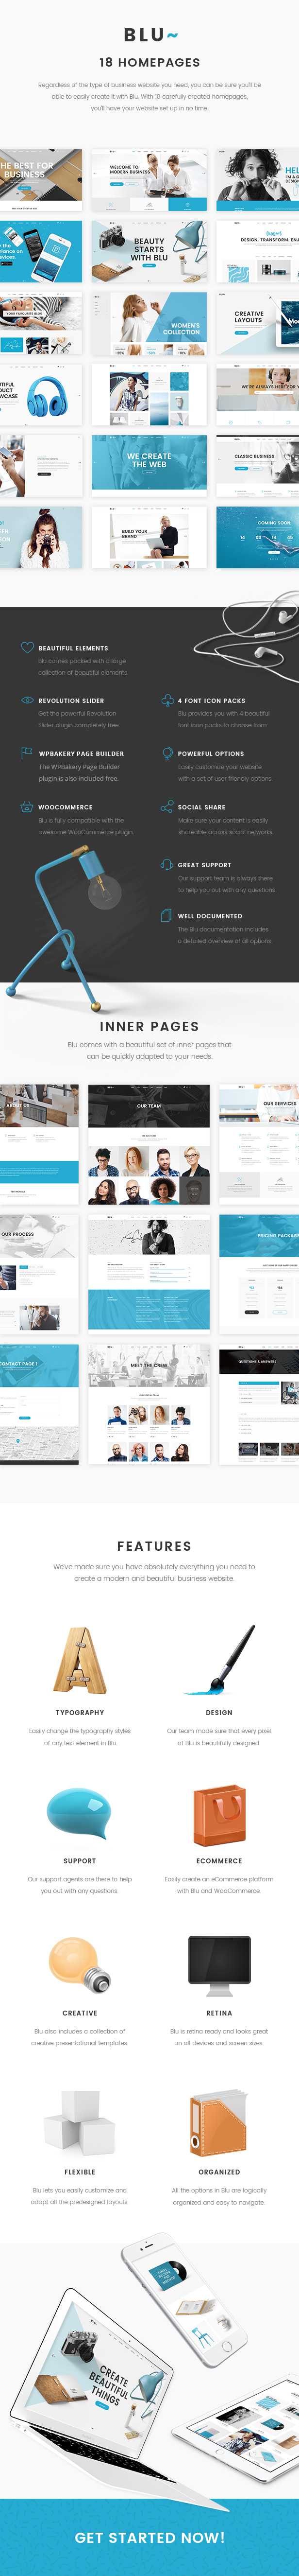 Blu - A Beautiful Business Theme for Agencies and Individuals - 1